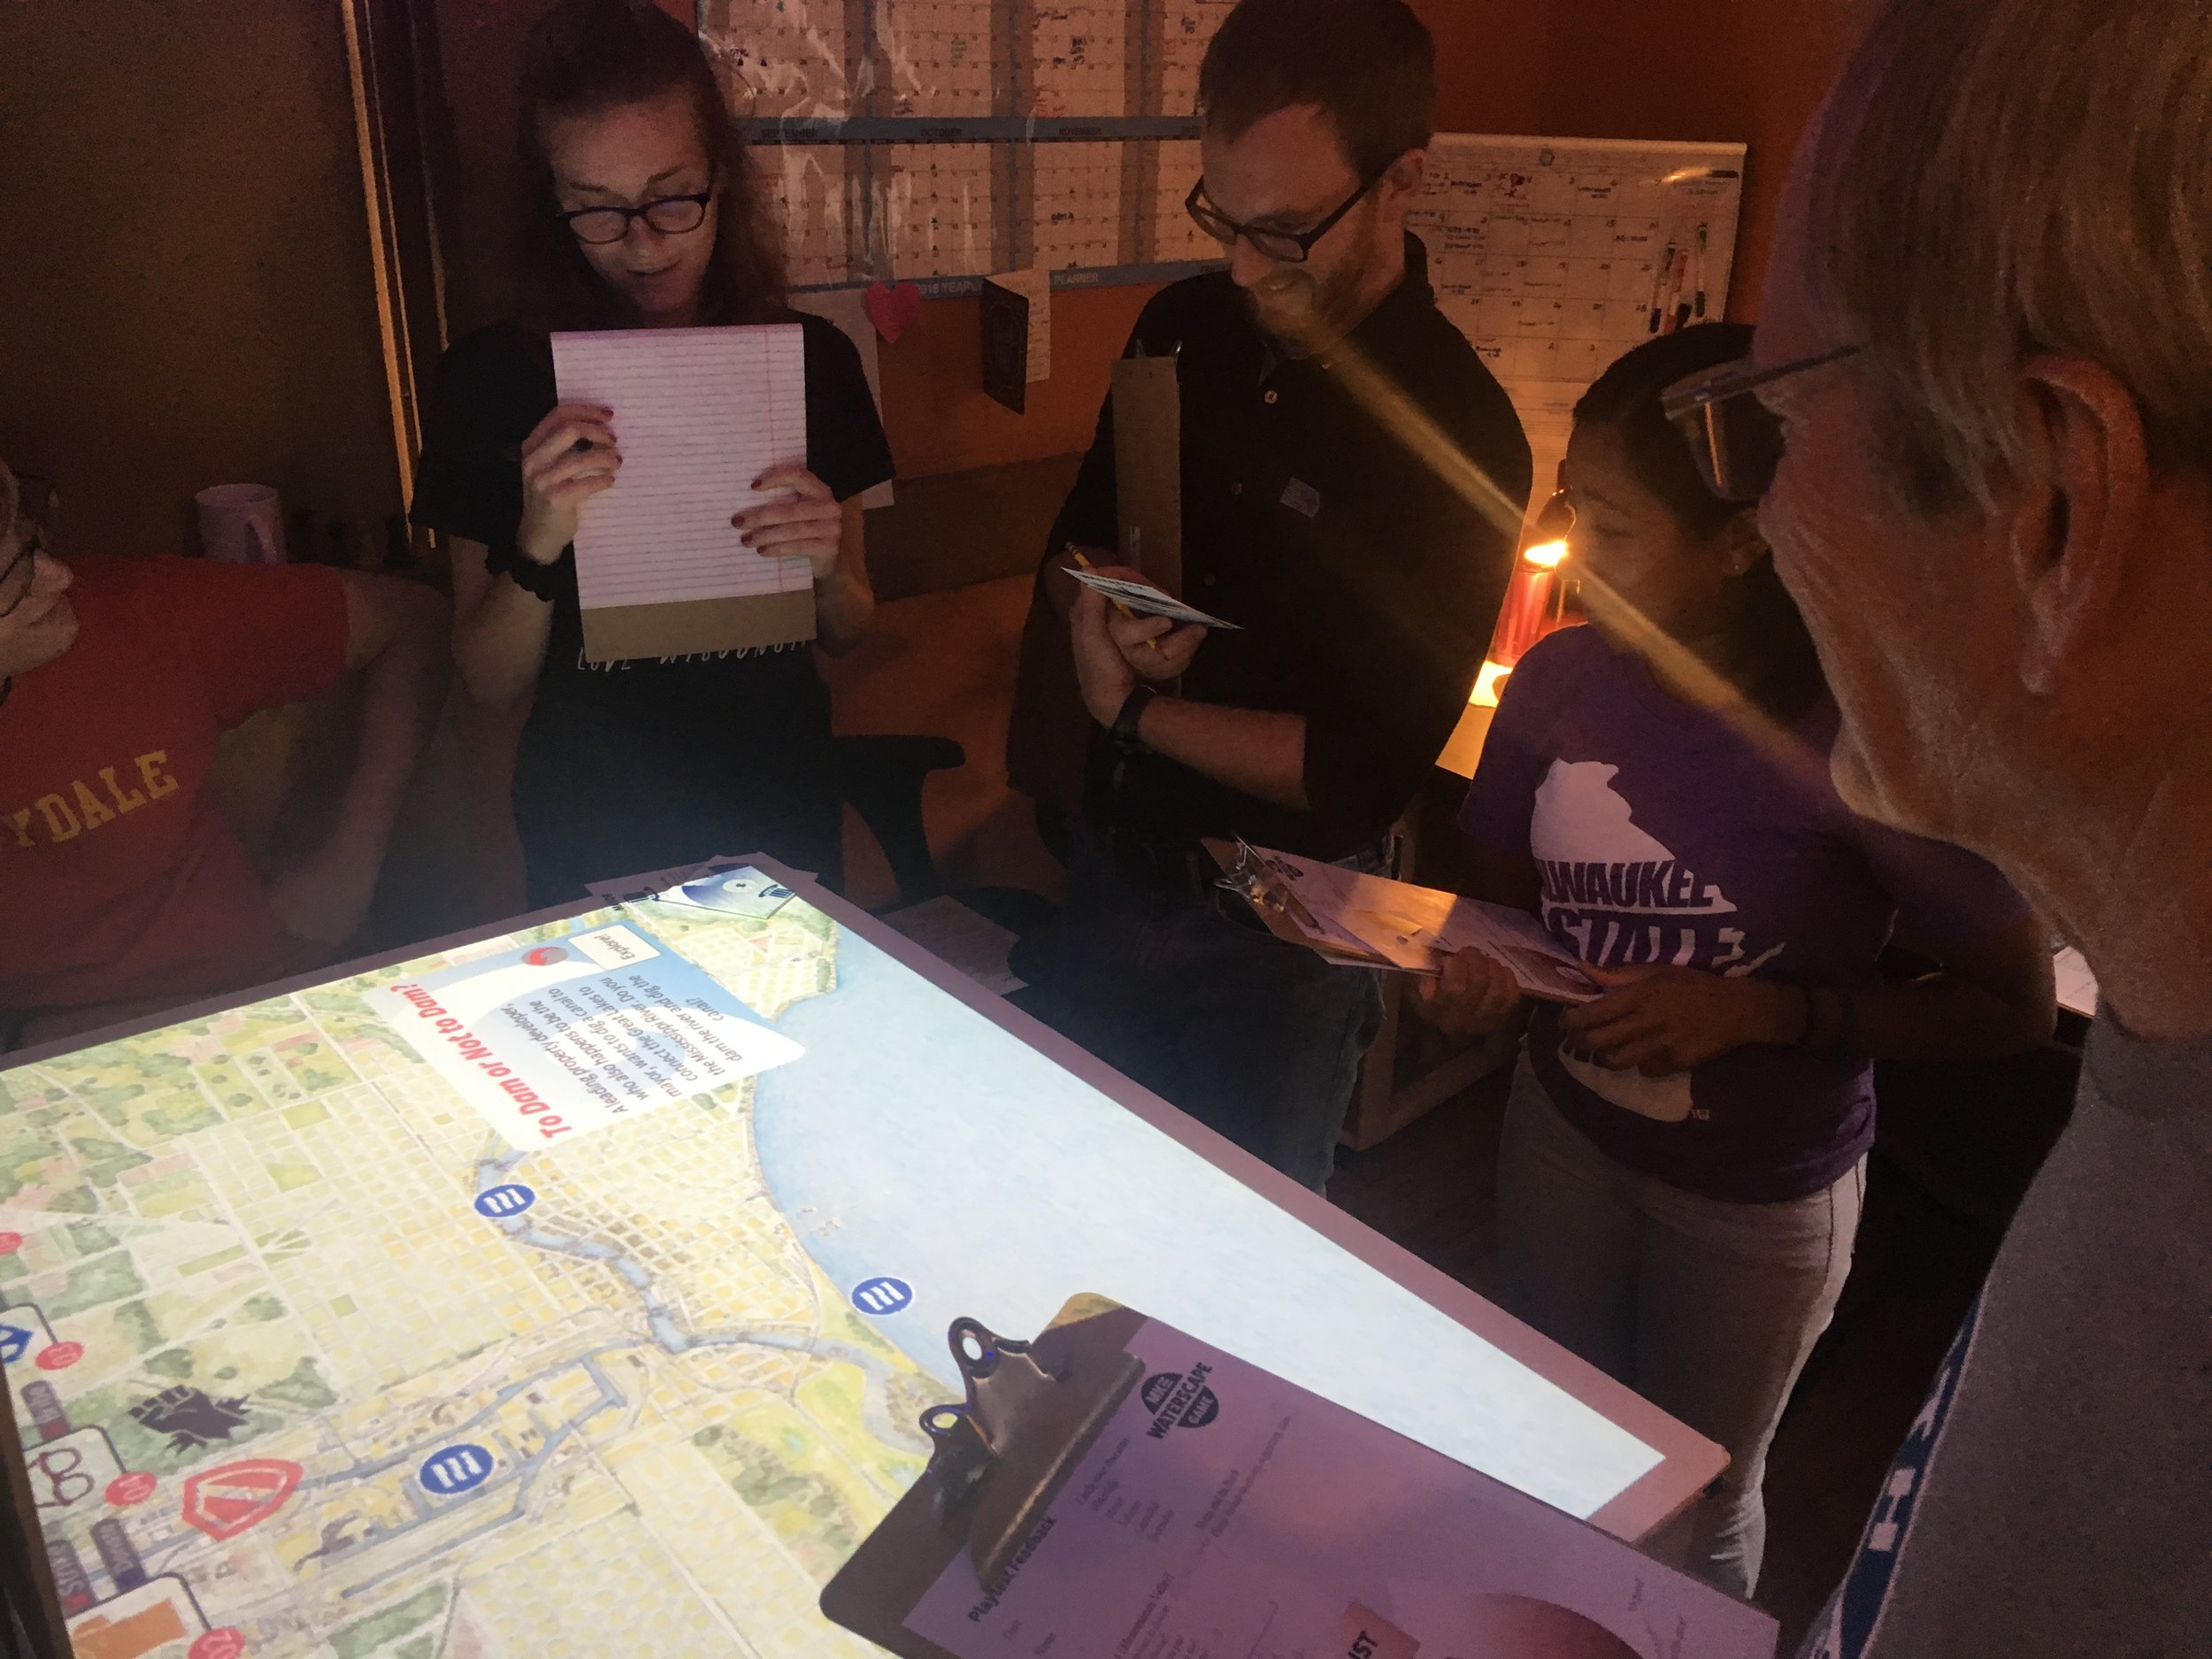 An exciting first digital playtest of our new game with our friends from the Port Exploreum and Milwaukee Water Commons on July 12, 2018. Join us for an upcoming playtest. Just email to RSVP!